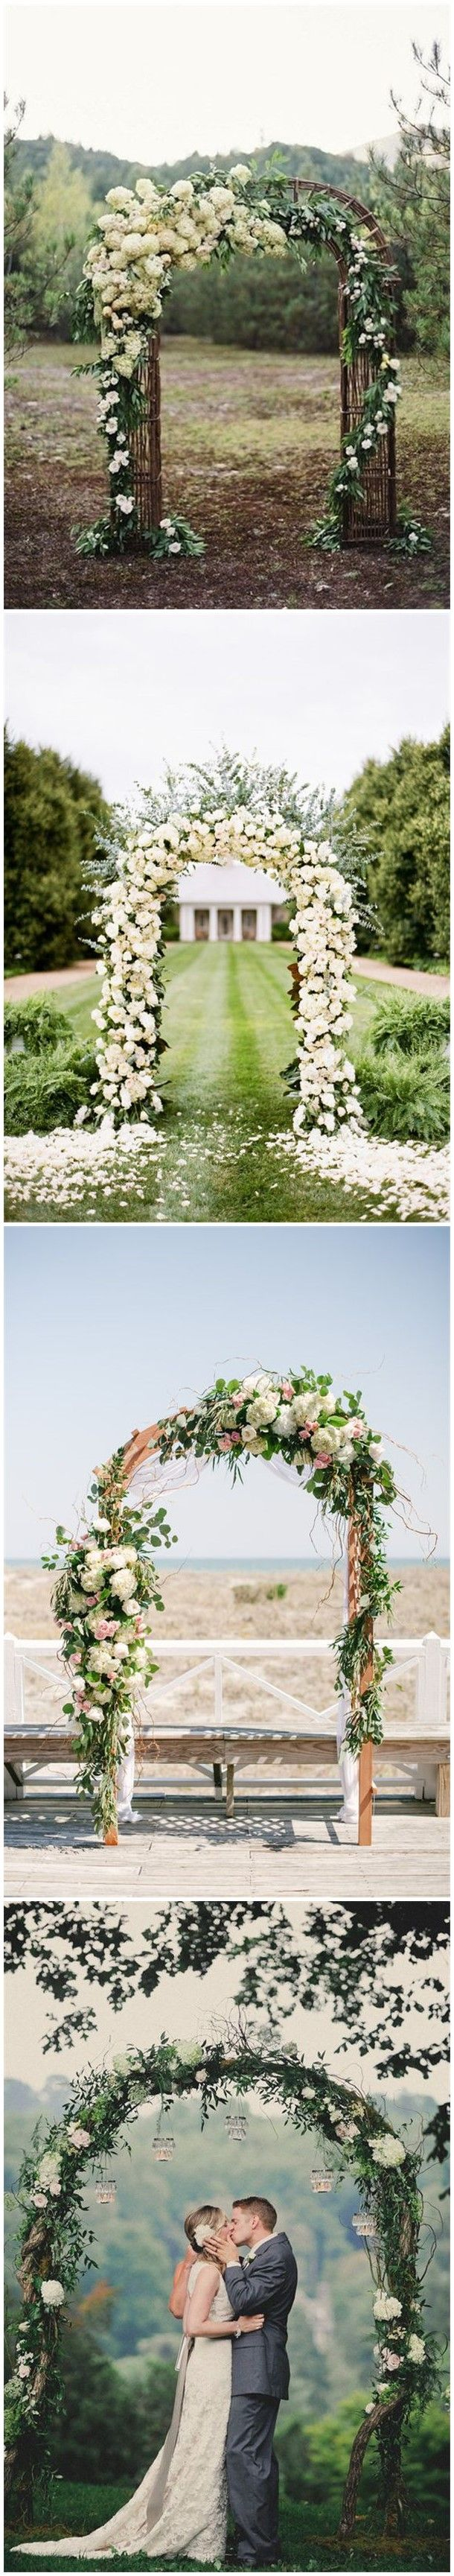 photos diy wedding arch with flowers for tulle mobile phones high resolution best cake conch fritters